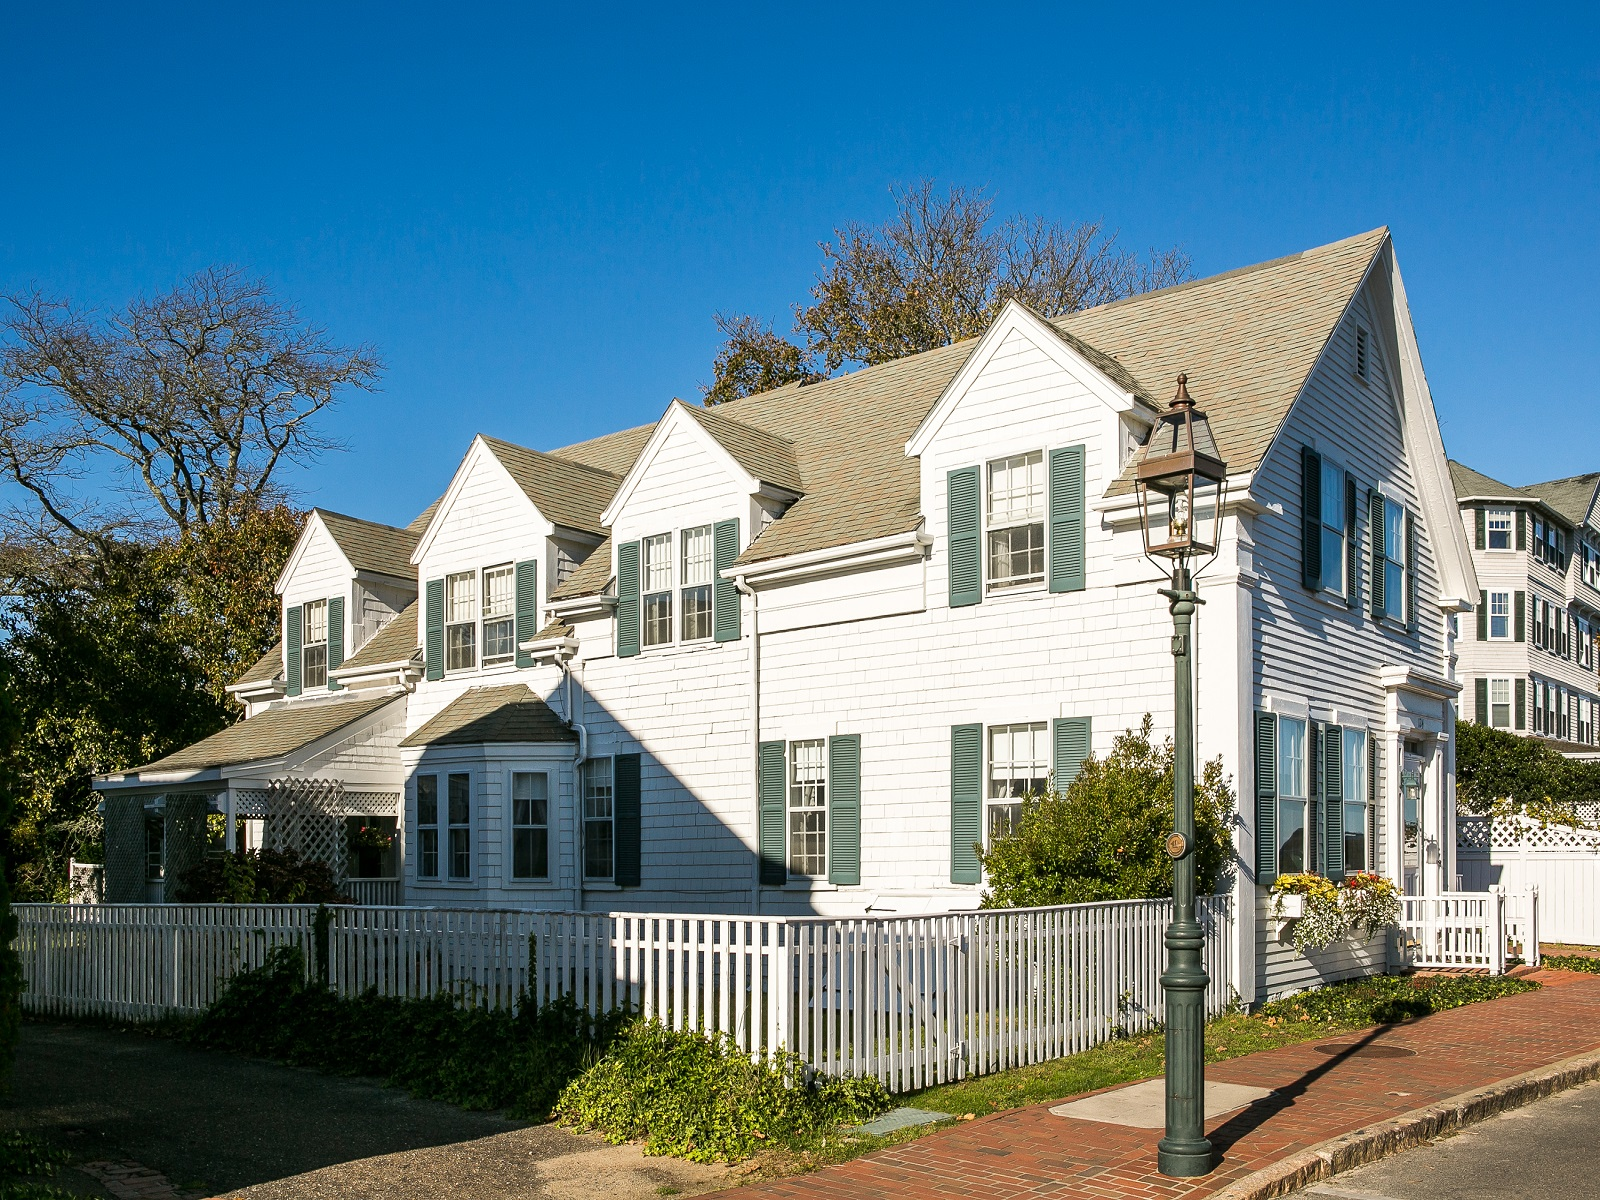 Casa Unifamiliar por un Venta en North Water Street, Edgartown 124 North Water Street Edgartown, Massachusetts 02539 Estados Unidos